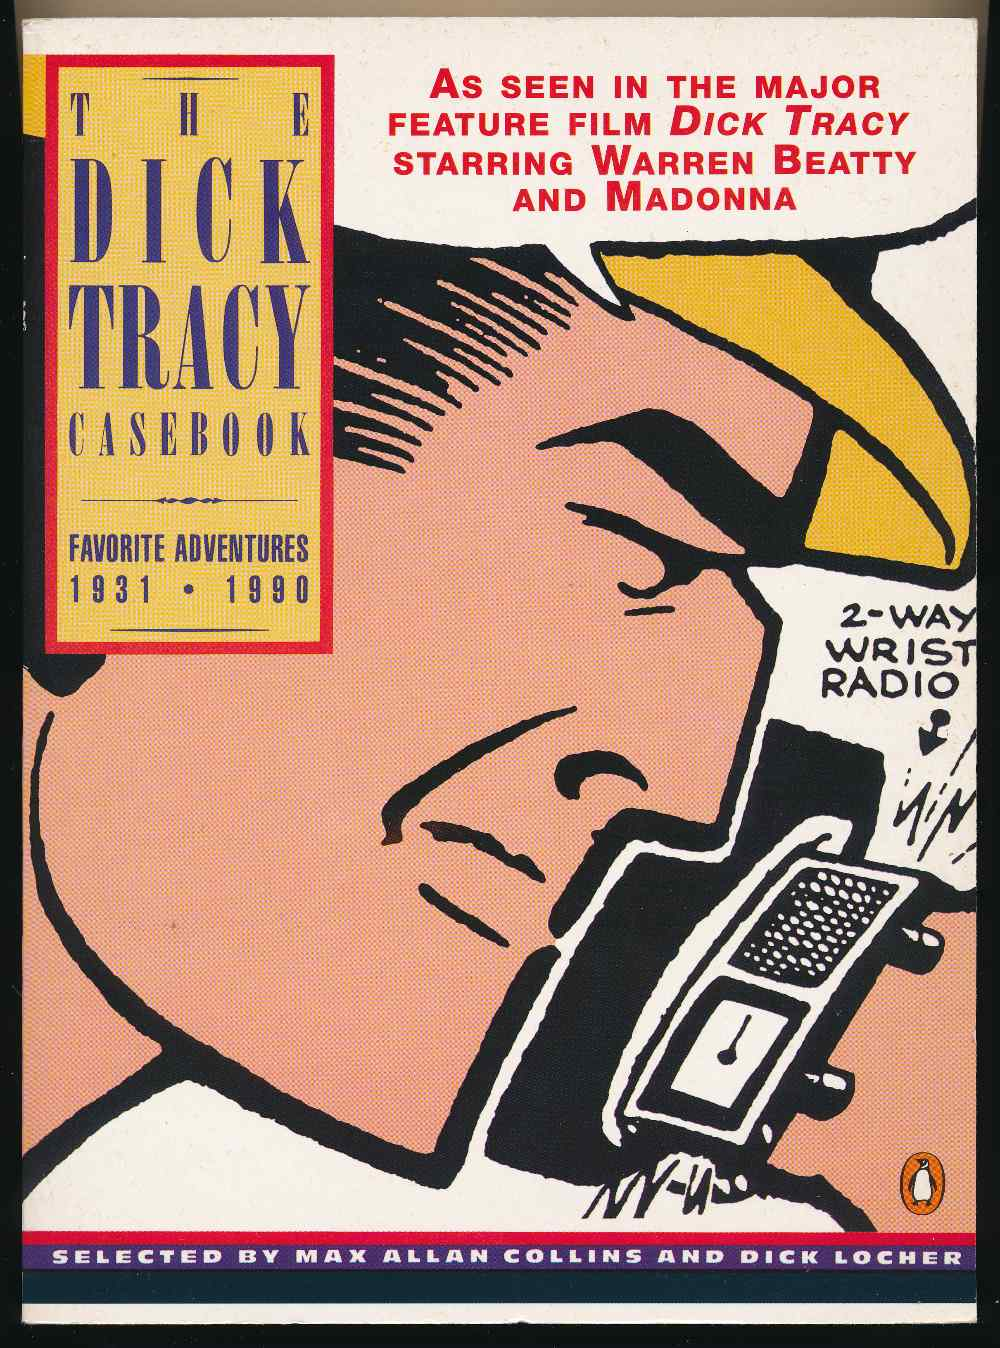 The Dick Tracy casebook : favourite adventures 1931-1990